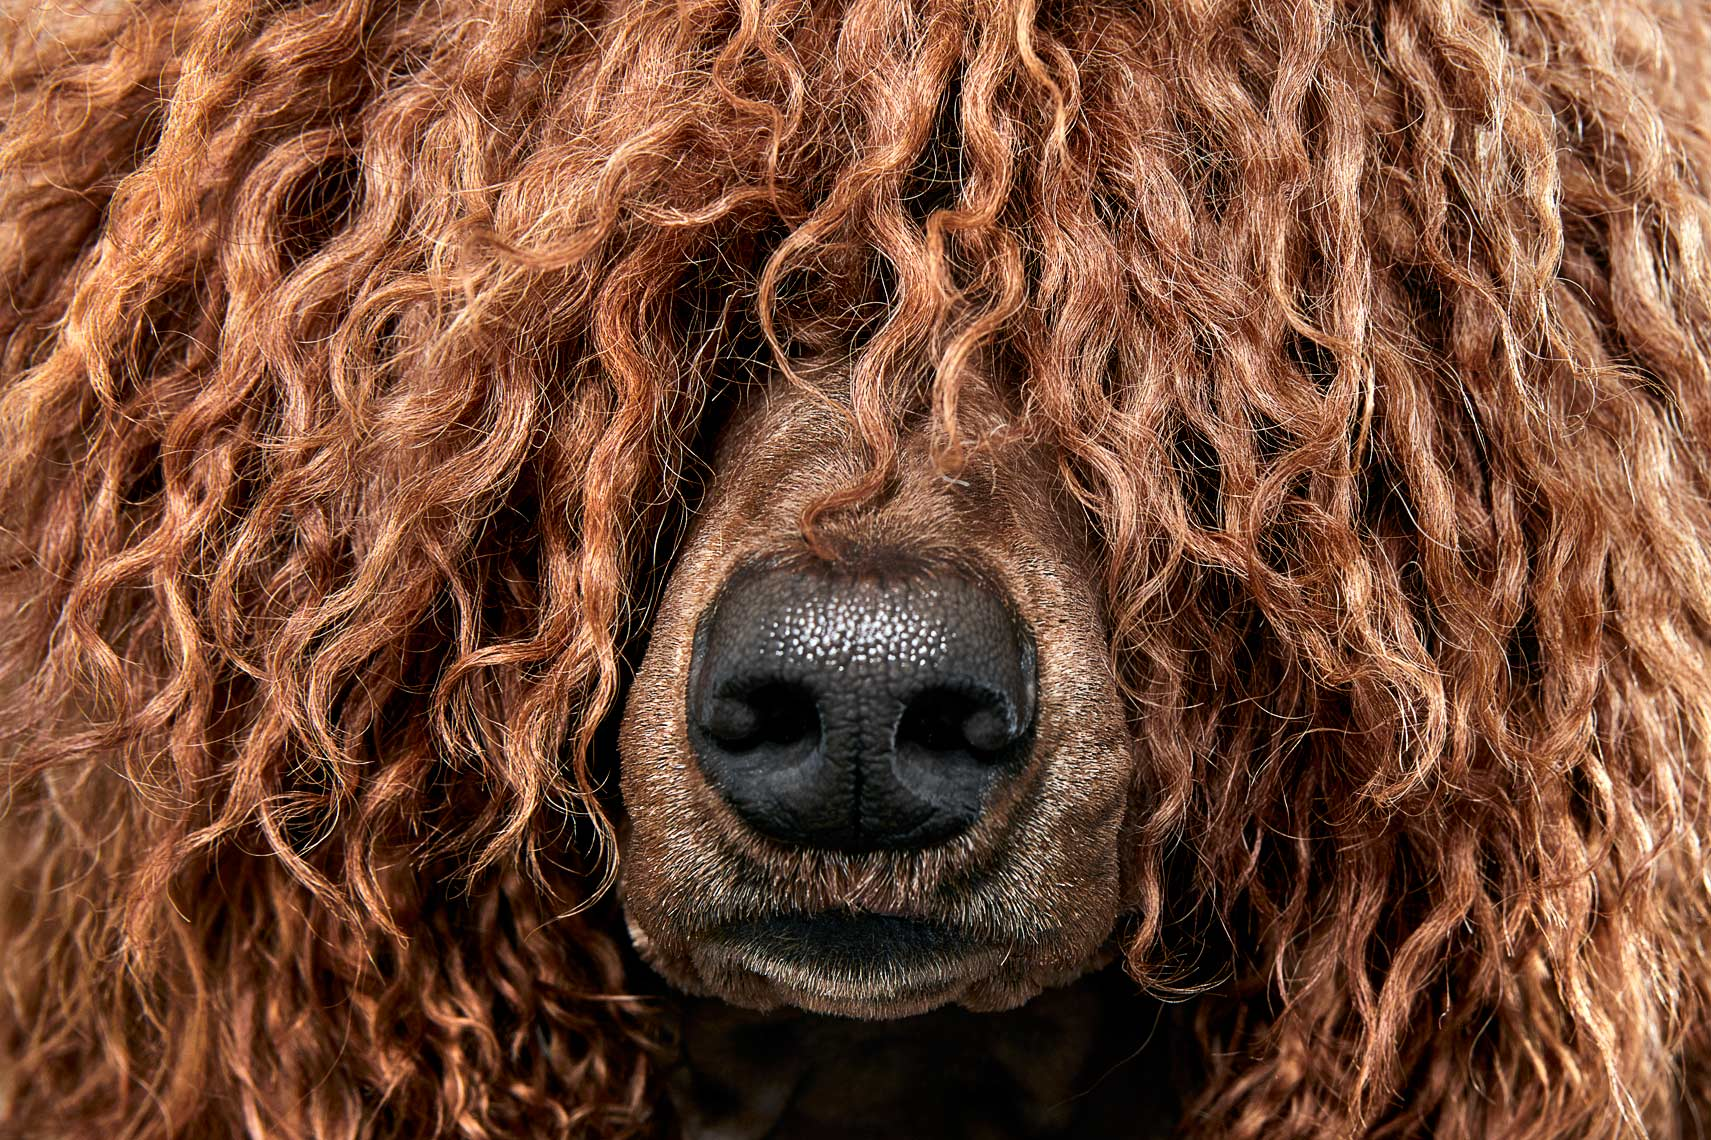 Poodle dog hair detail